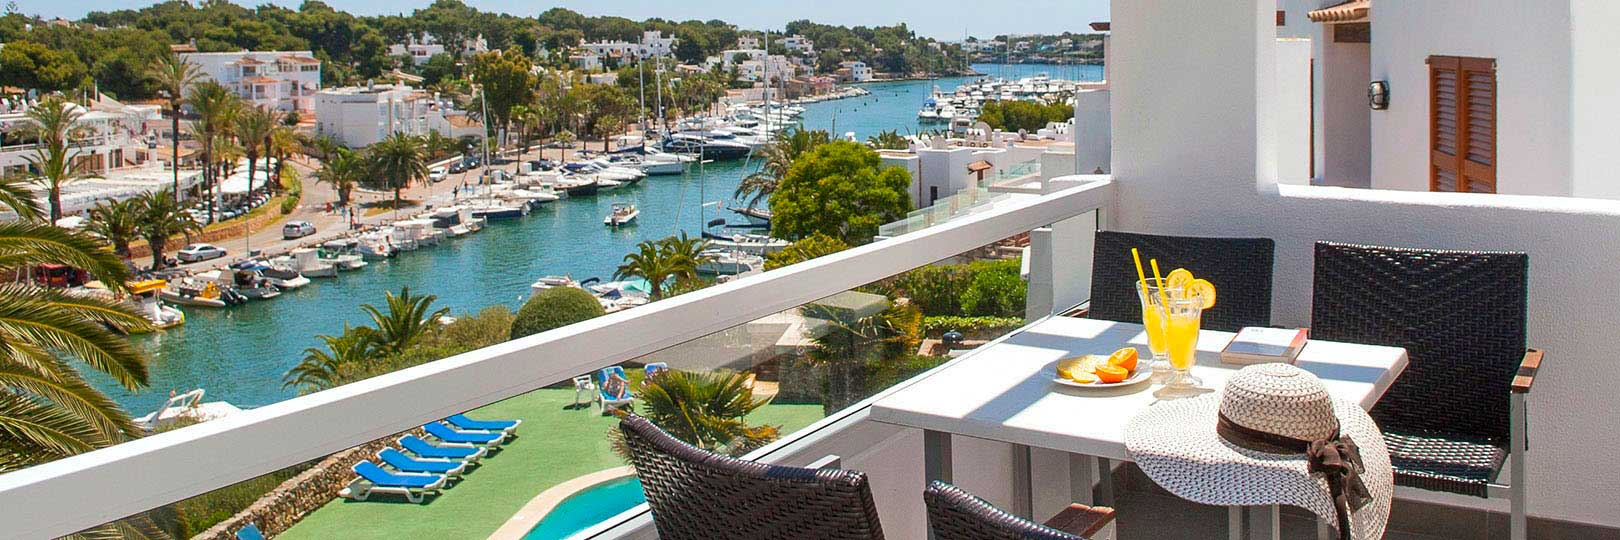 Holiday aparment for rent in Majorca